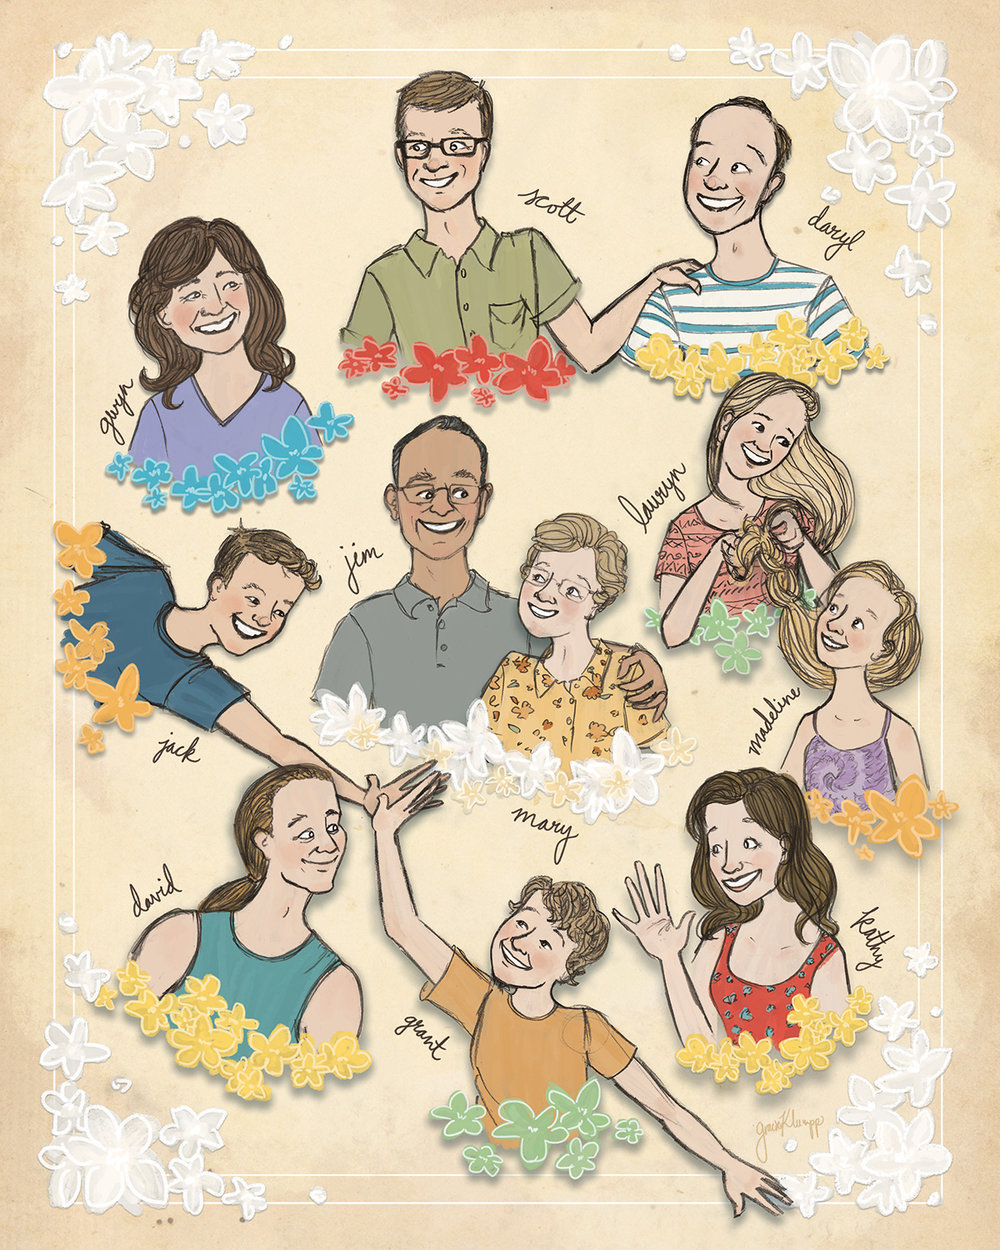 We got creative in order to fit all 11 members of the family into this 50th anniversary present for Jim and Mary! We even made the flower colors correspond with family units as an extra detail.